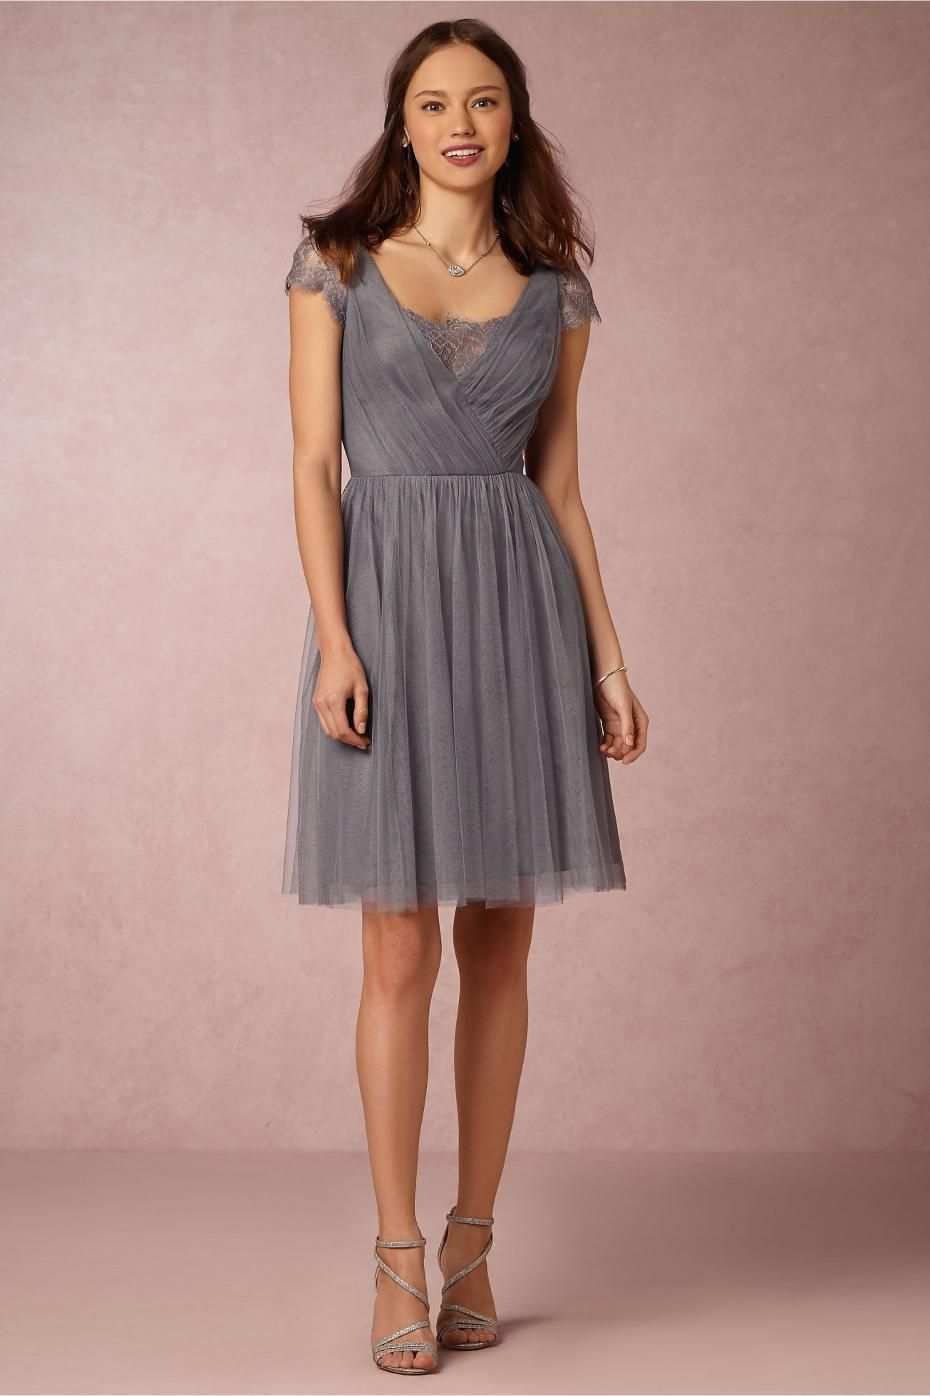 Tea-Length-Grey-Bridesmaid-Dresses | Grey Bridesmaid Dress | Pinterest